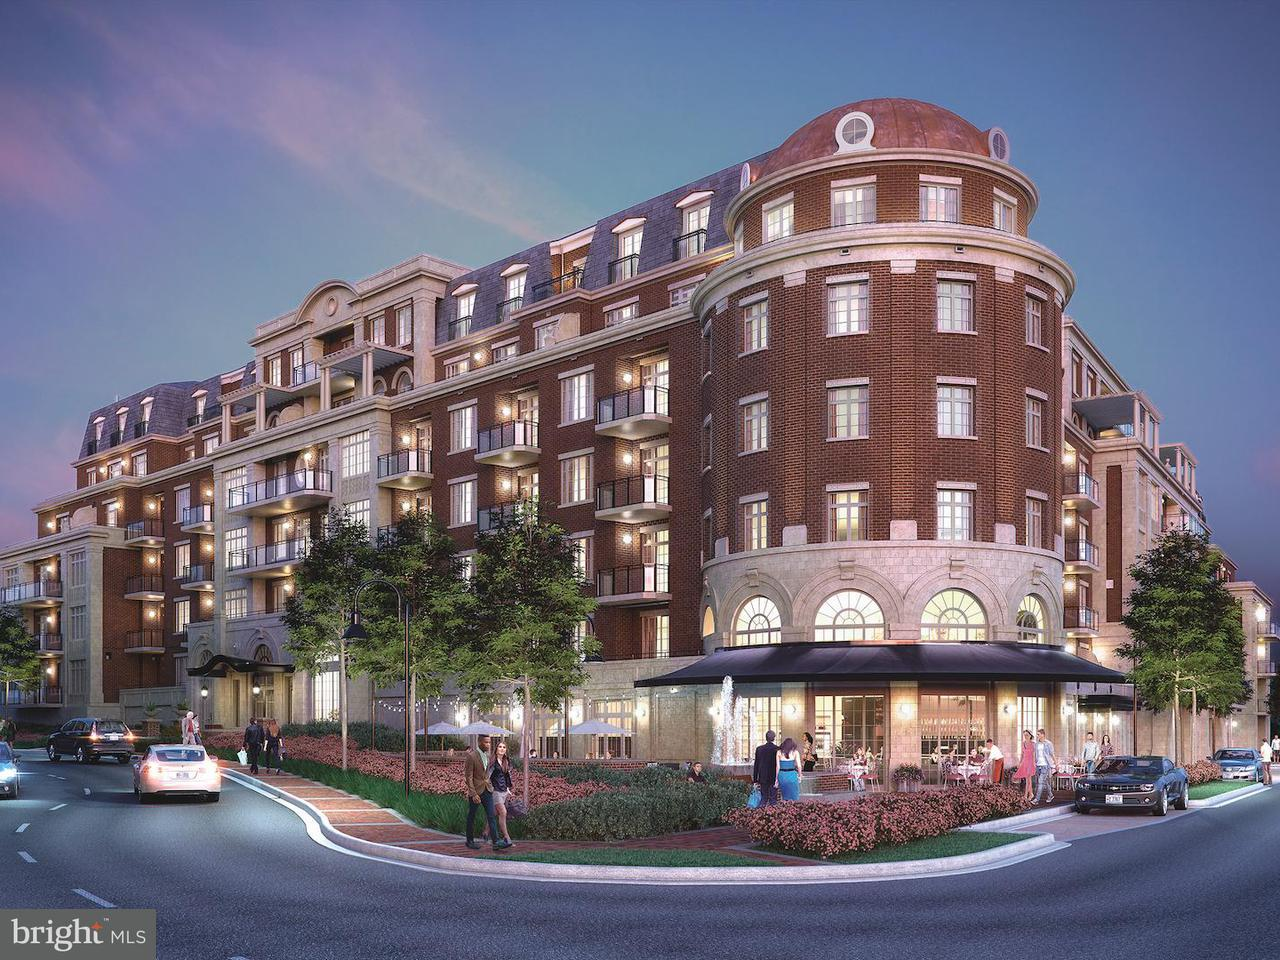 Condominium for Sale at 6900 Fleetwood Rd #400 6900 Fleetwood Rd #400 McLean, Virginia 22101 United States